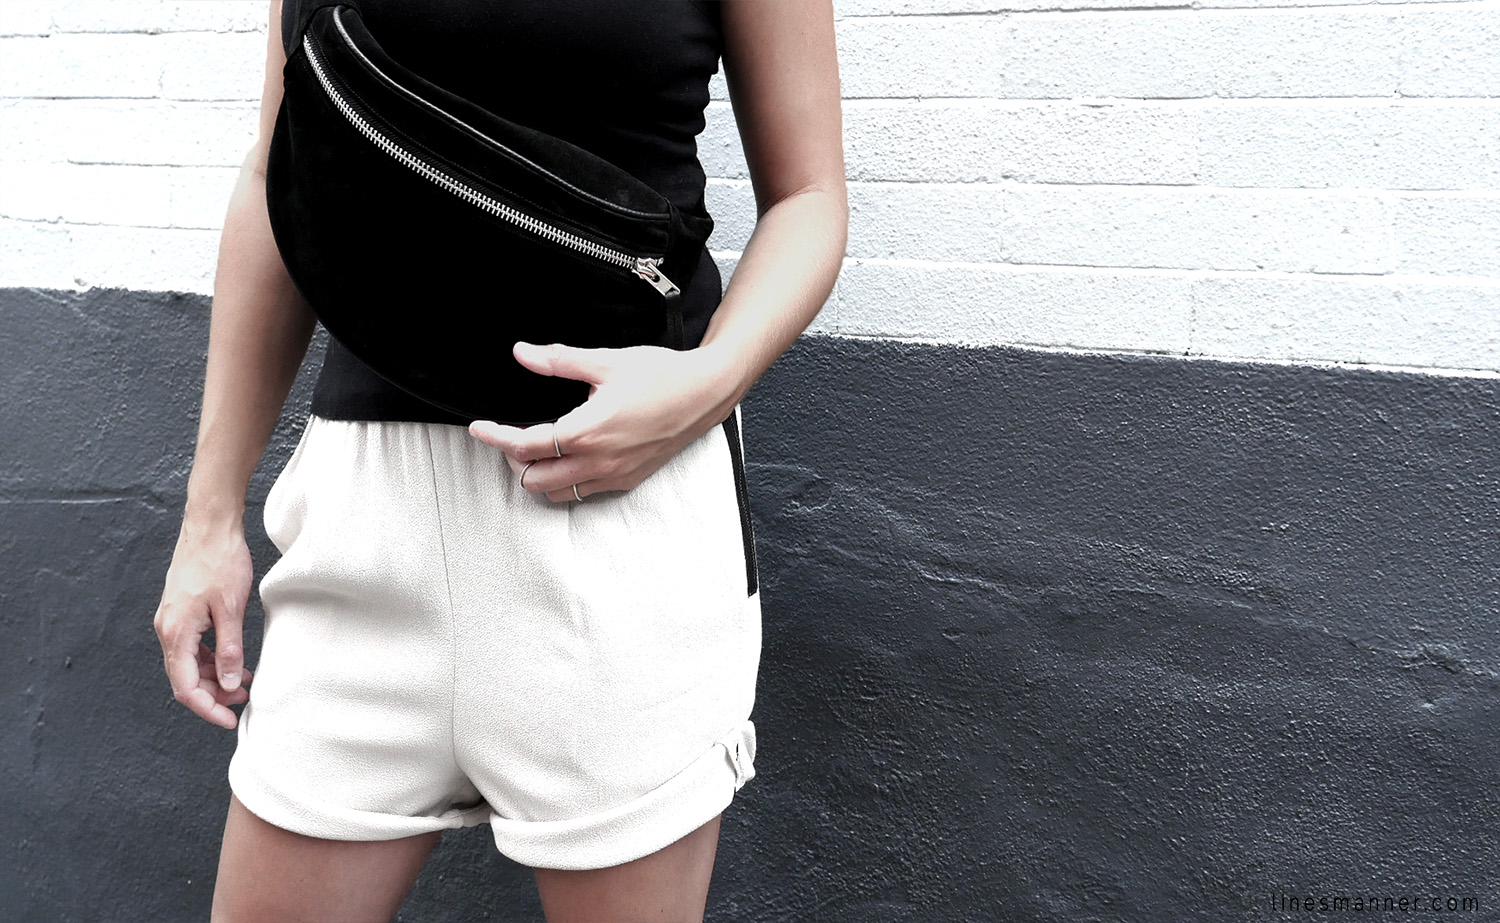 Lines-Manner-Minimalism-Comfy-Bumbag-Aesthetic-Effortless_Chic-Structured-Simplicity-Clean-Relaxed-Trend-7